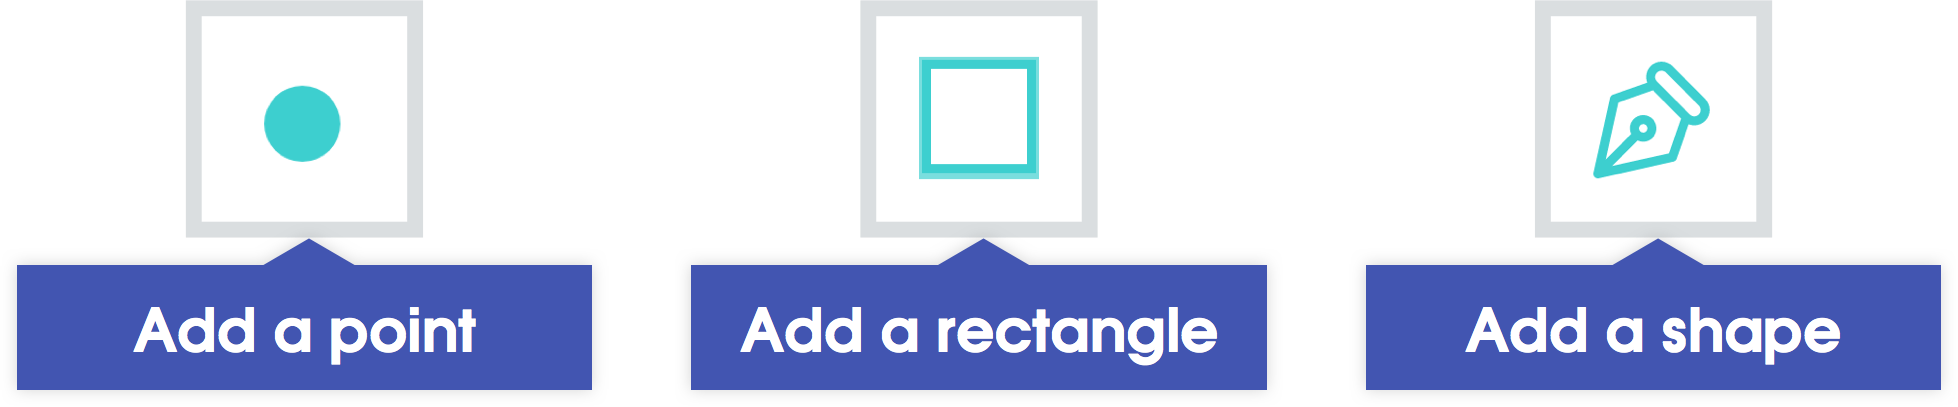 Hotspot Tools: Point, Rectangle, and Shape